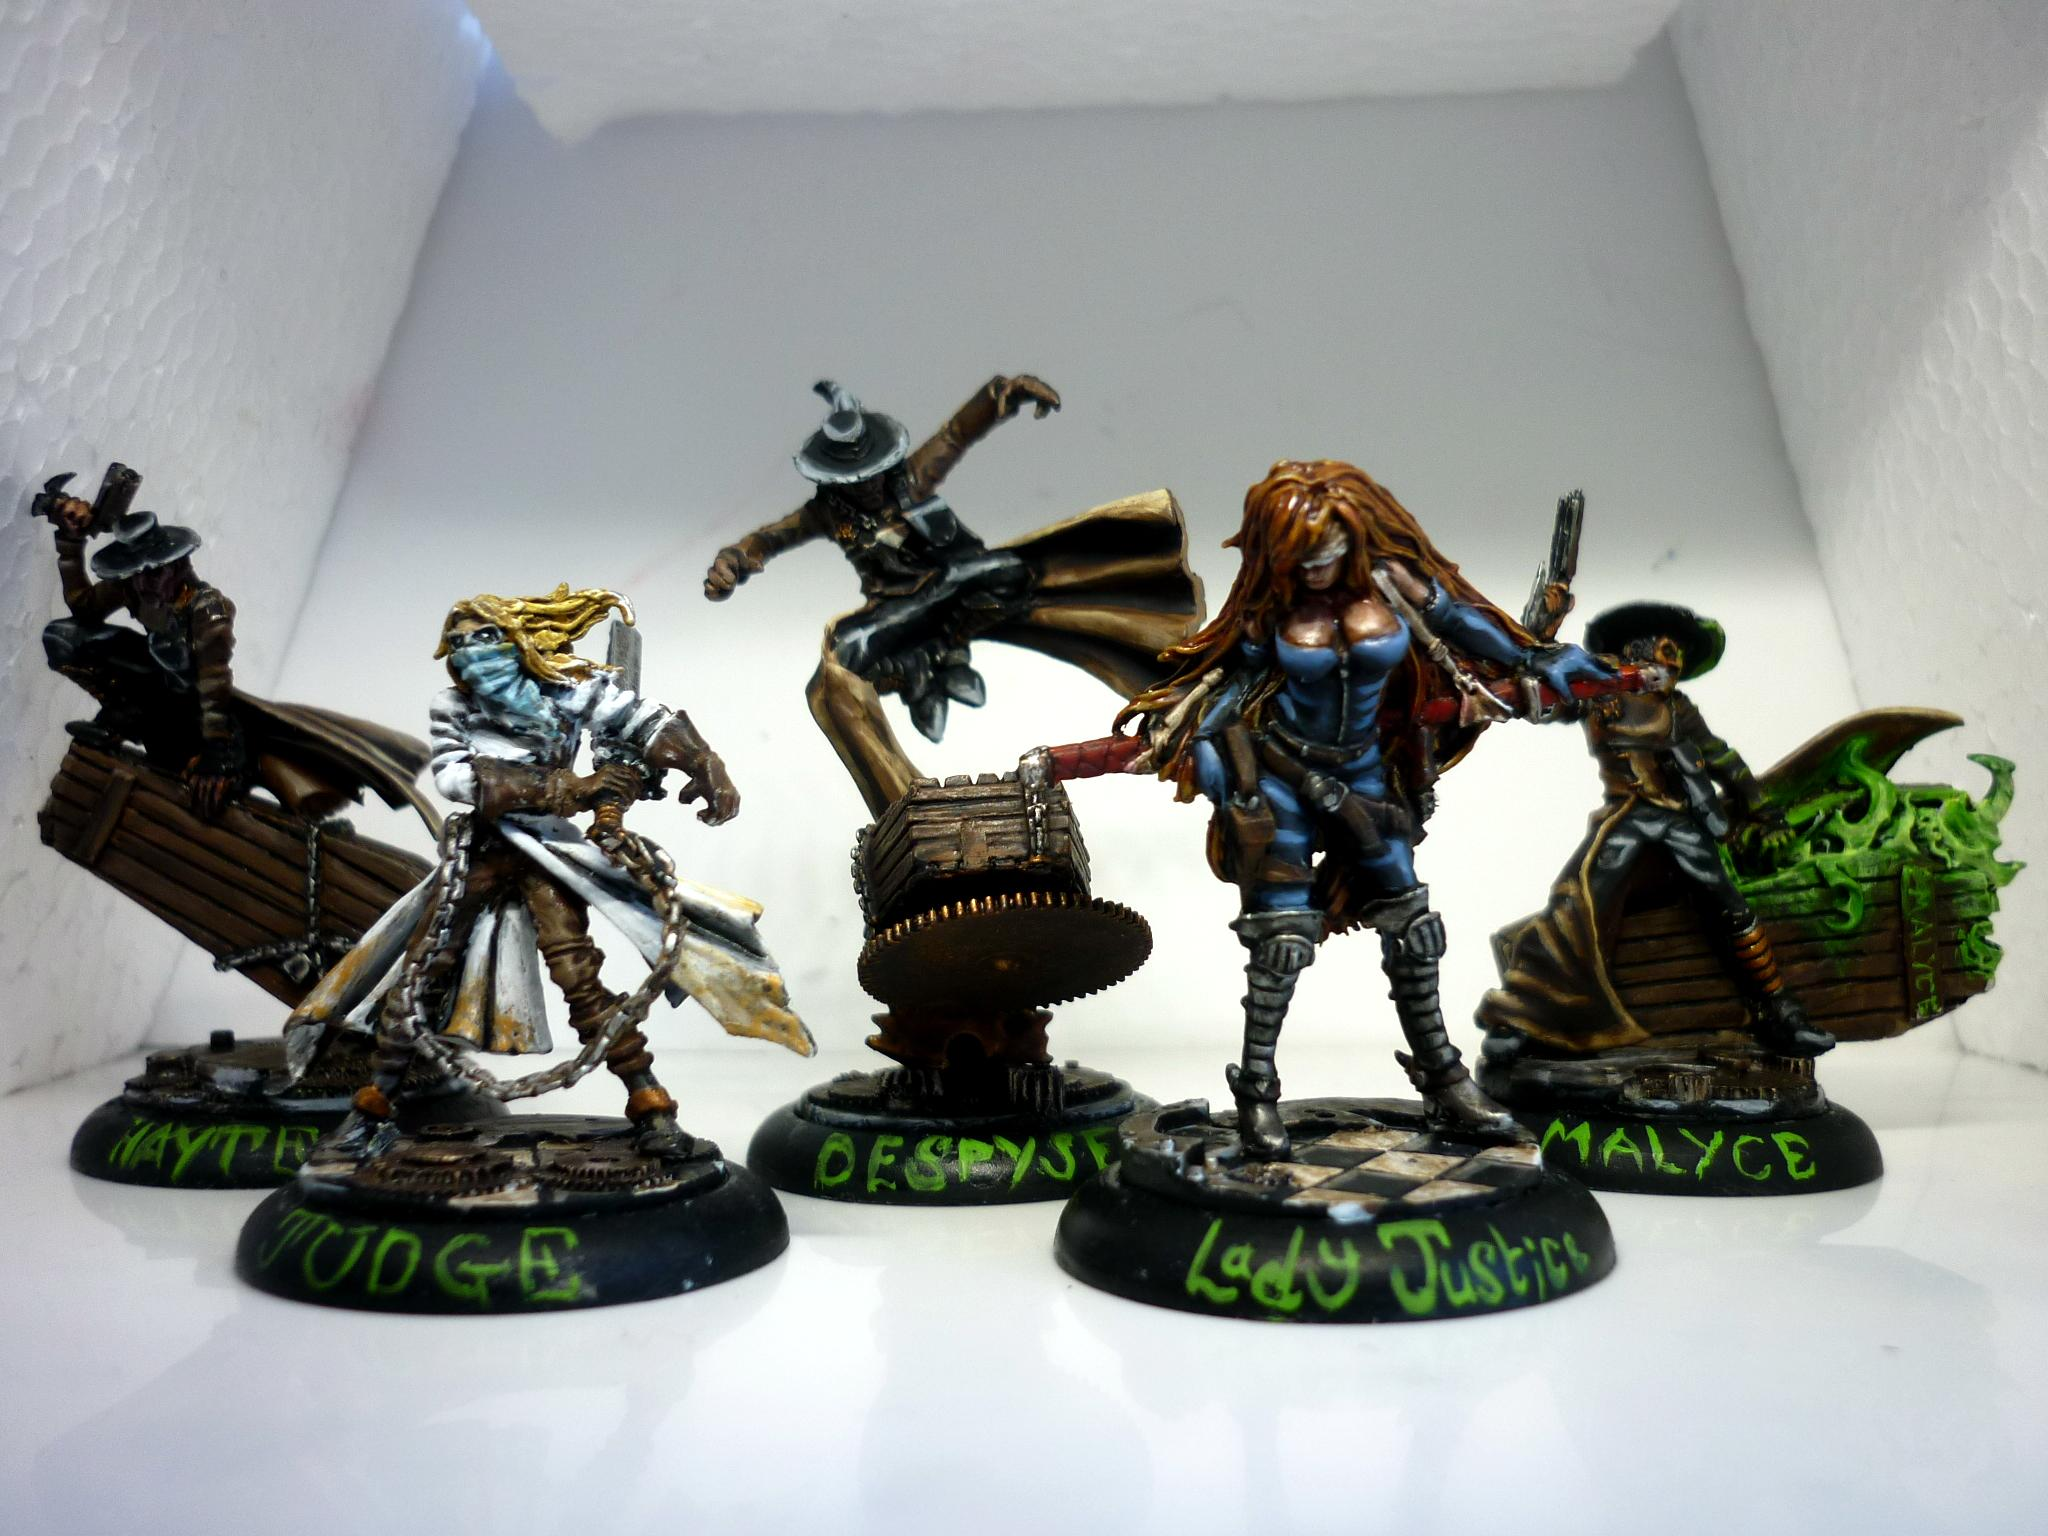 Construct, Death, Flesh, Guild, Judge, Justice, Lady, Malifaux, Marshall, Mcmourning, Miniatures, Nurse, Sebastian, Wyrd